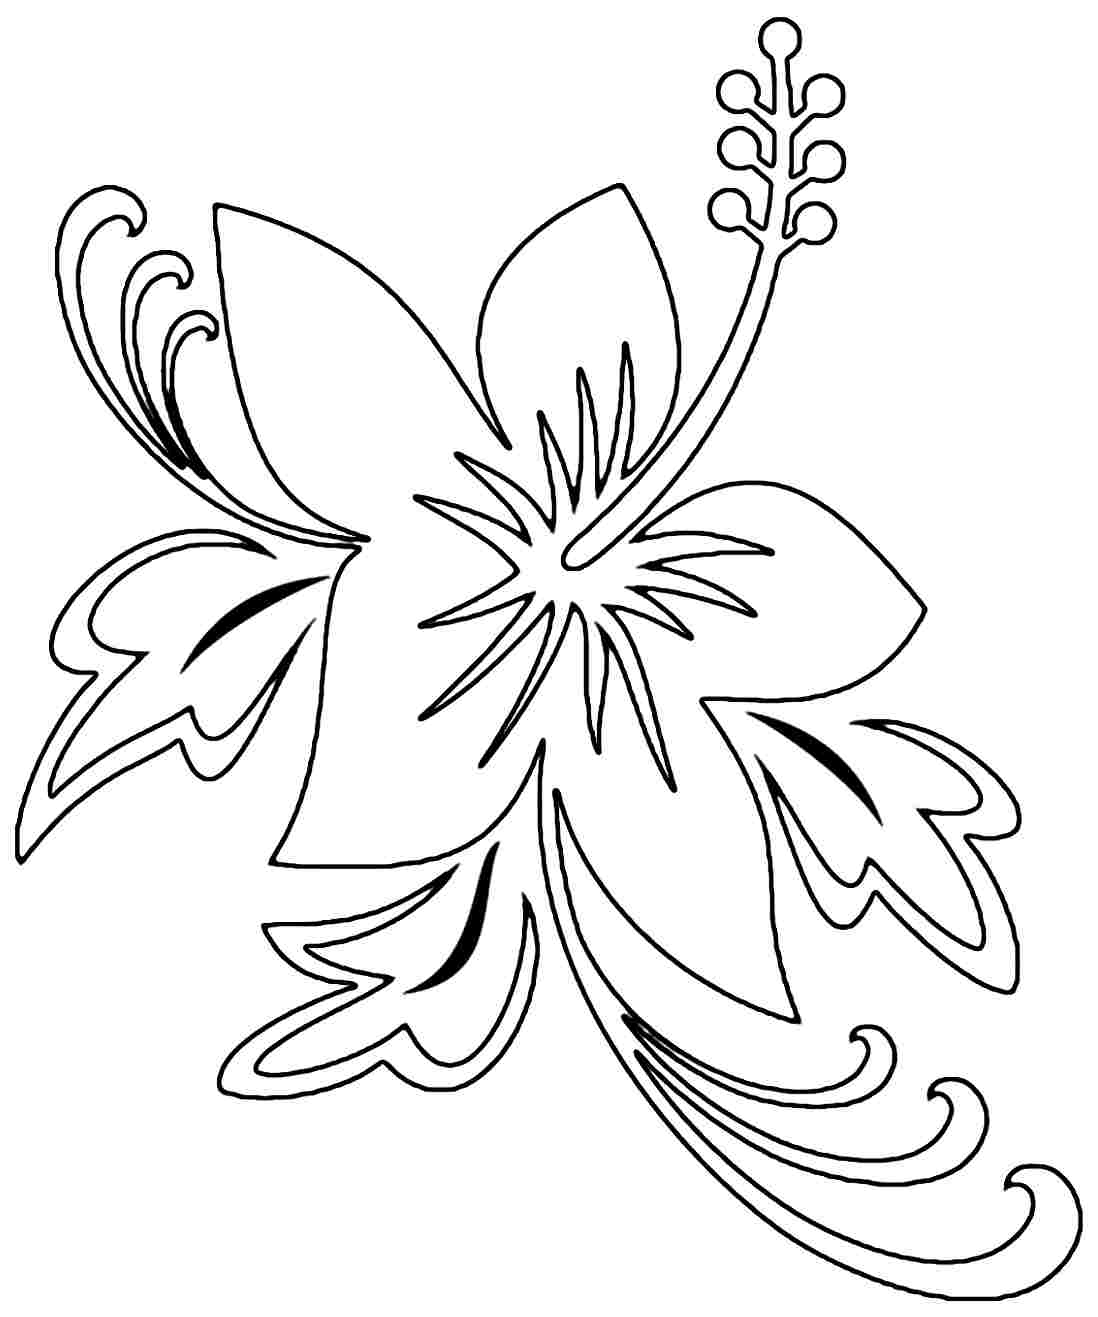 8 Best Images of Free Printable Hibiscus - Hibiscus Flower Outline ...